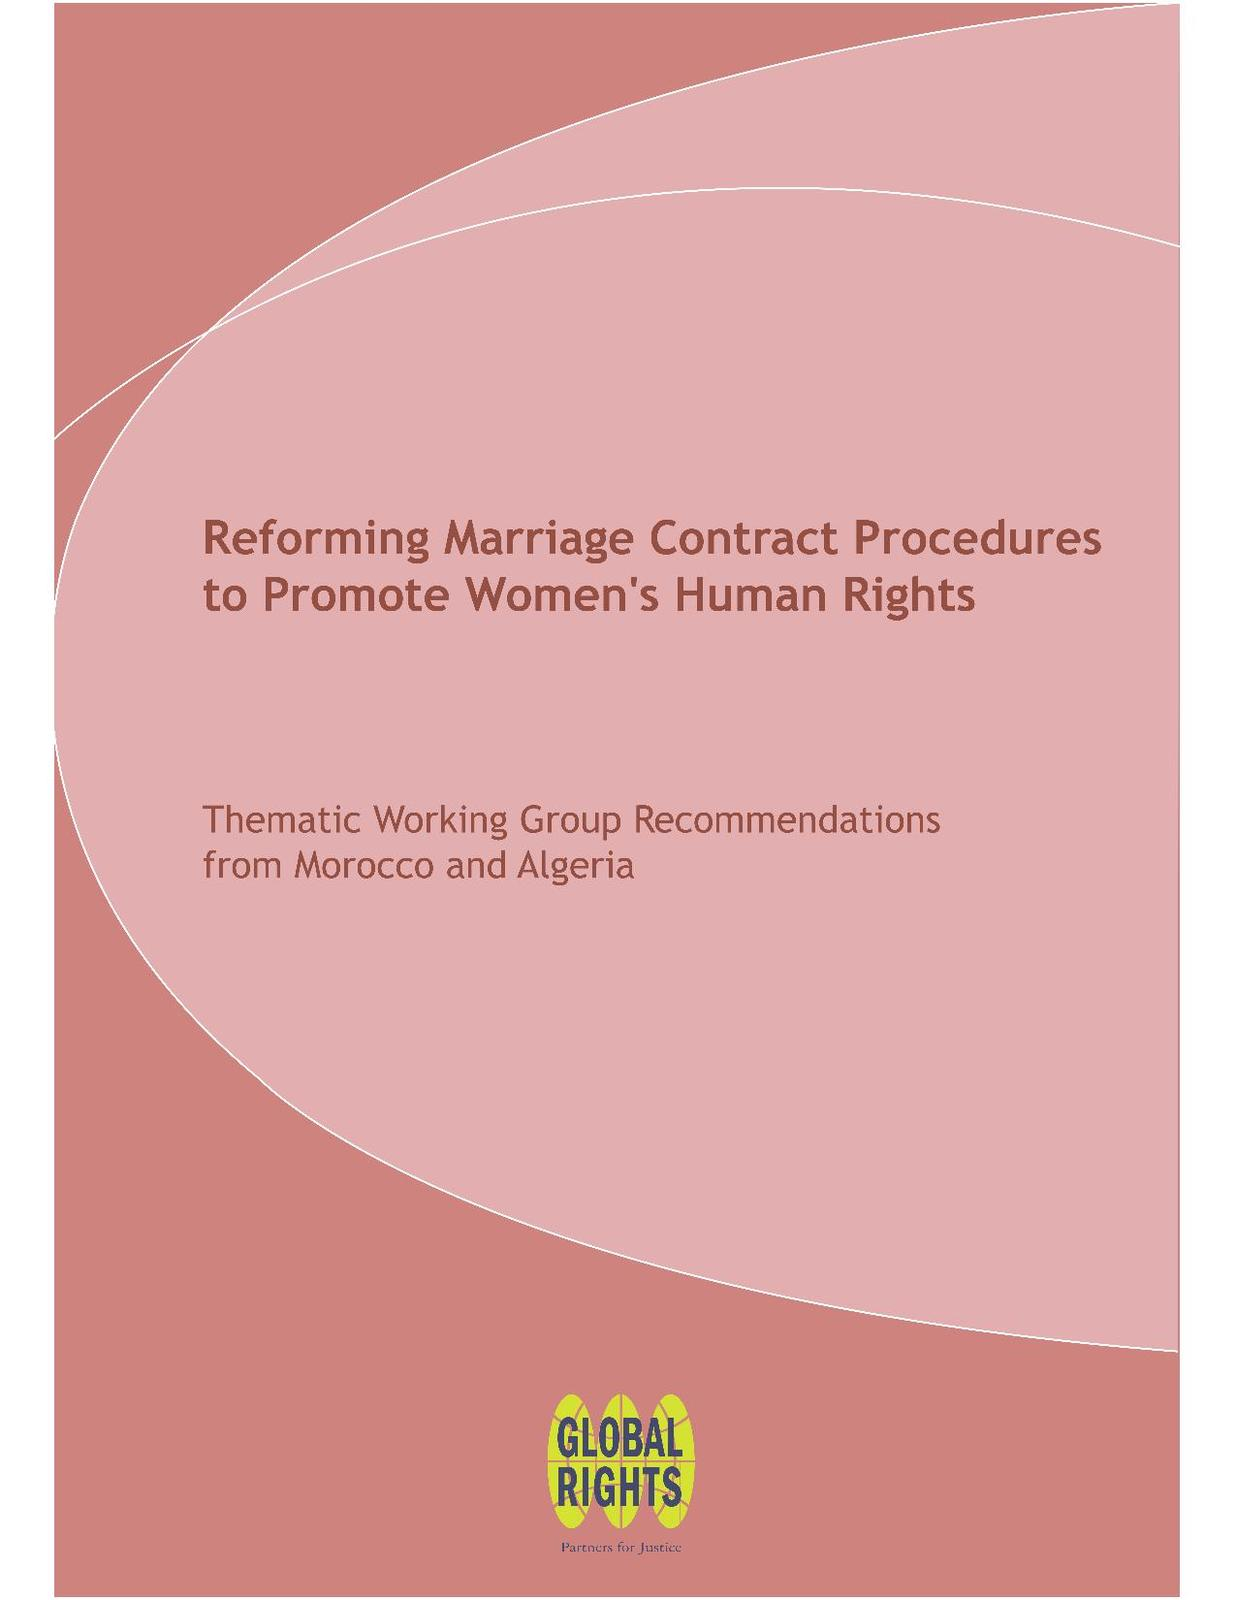 Reforming Marriage Contract Procedures to Promote Women's Human Rights